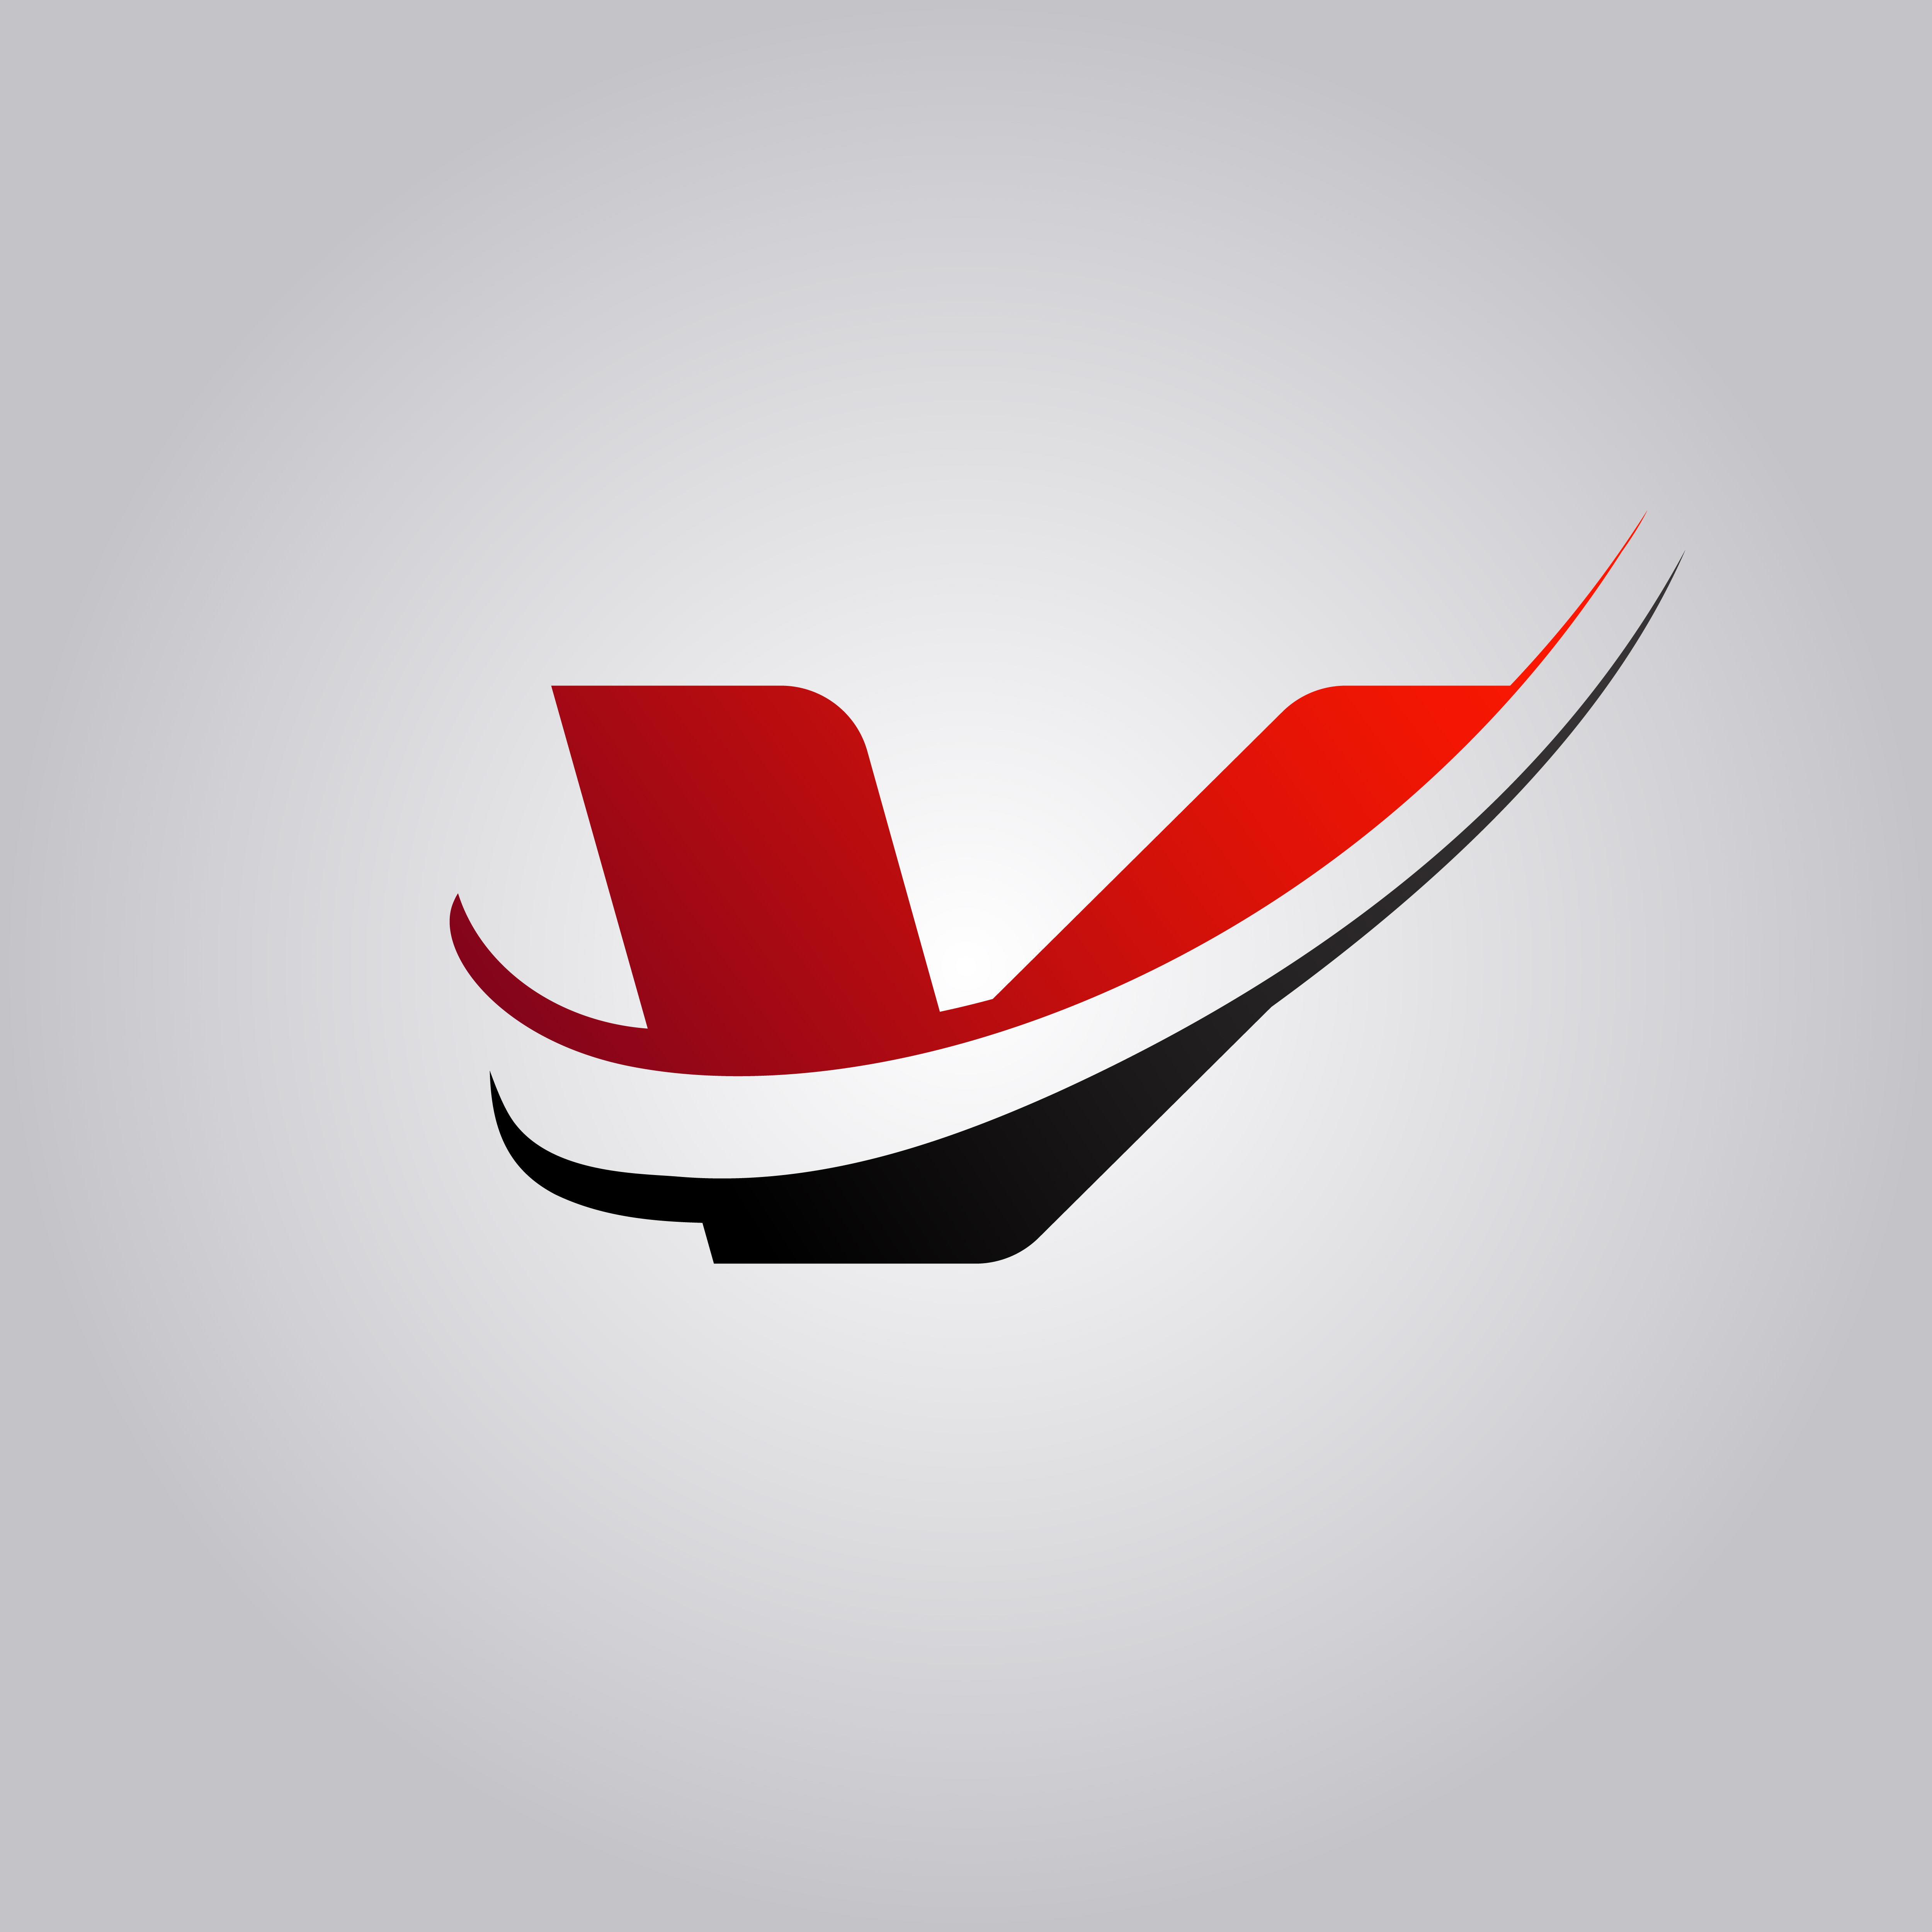 Initial V Letter Logo With Swoosh Colored Red And Black